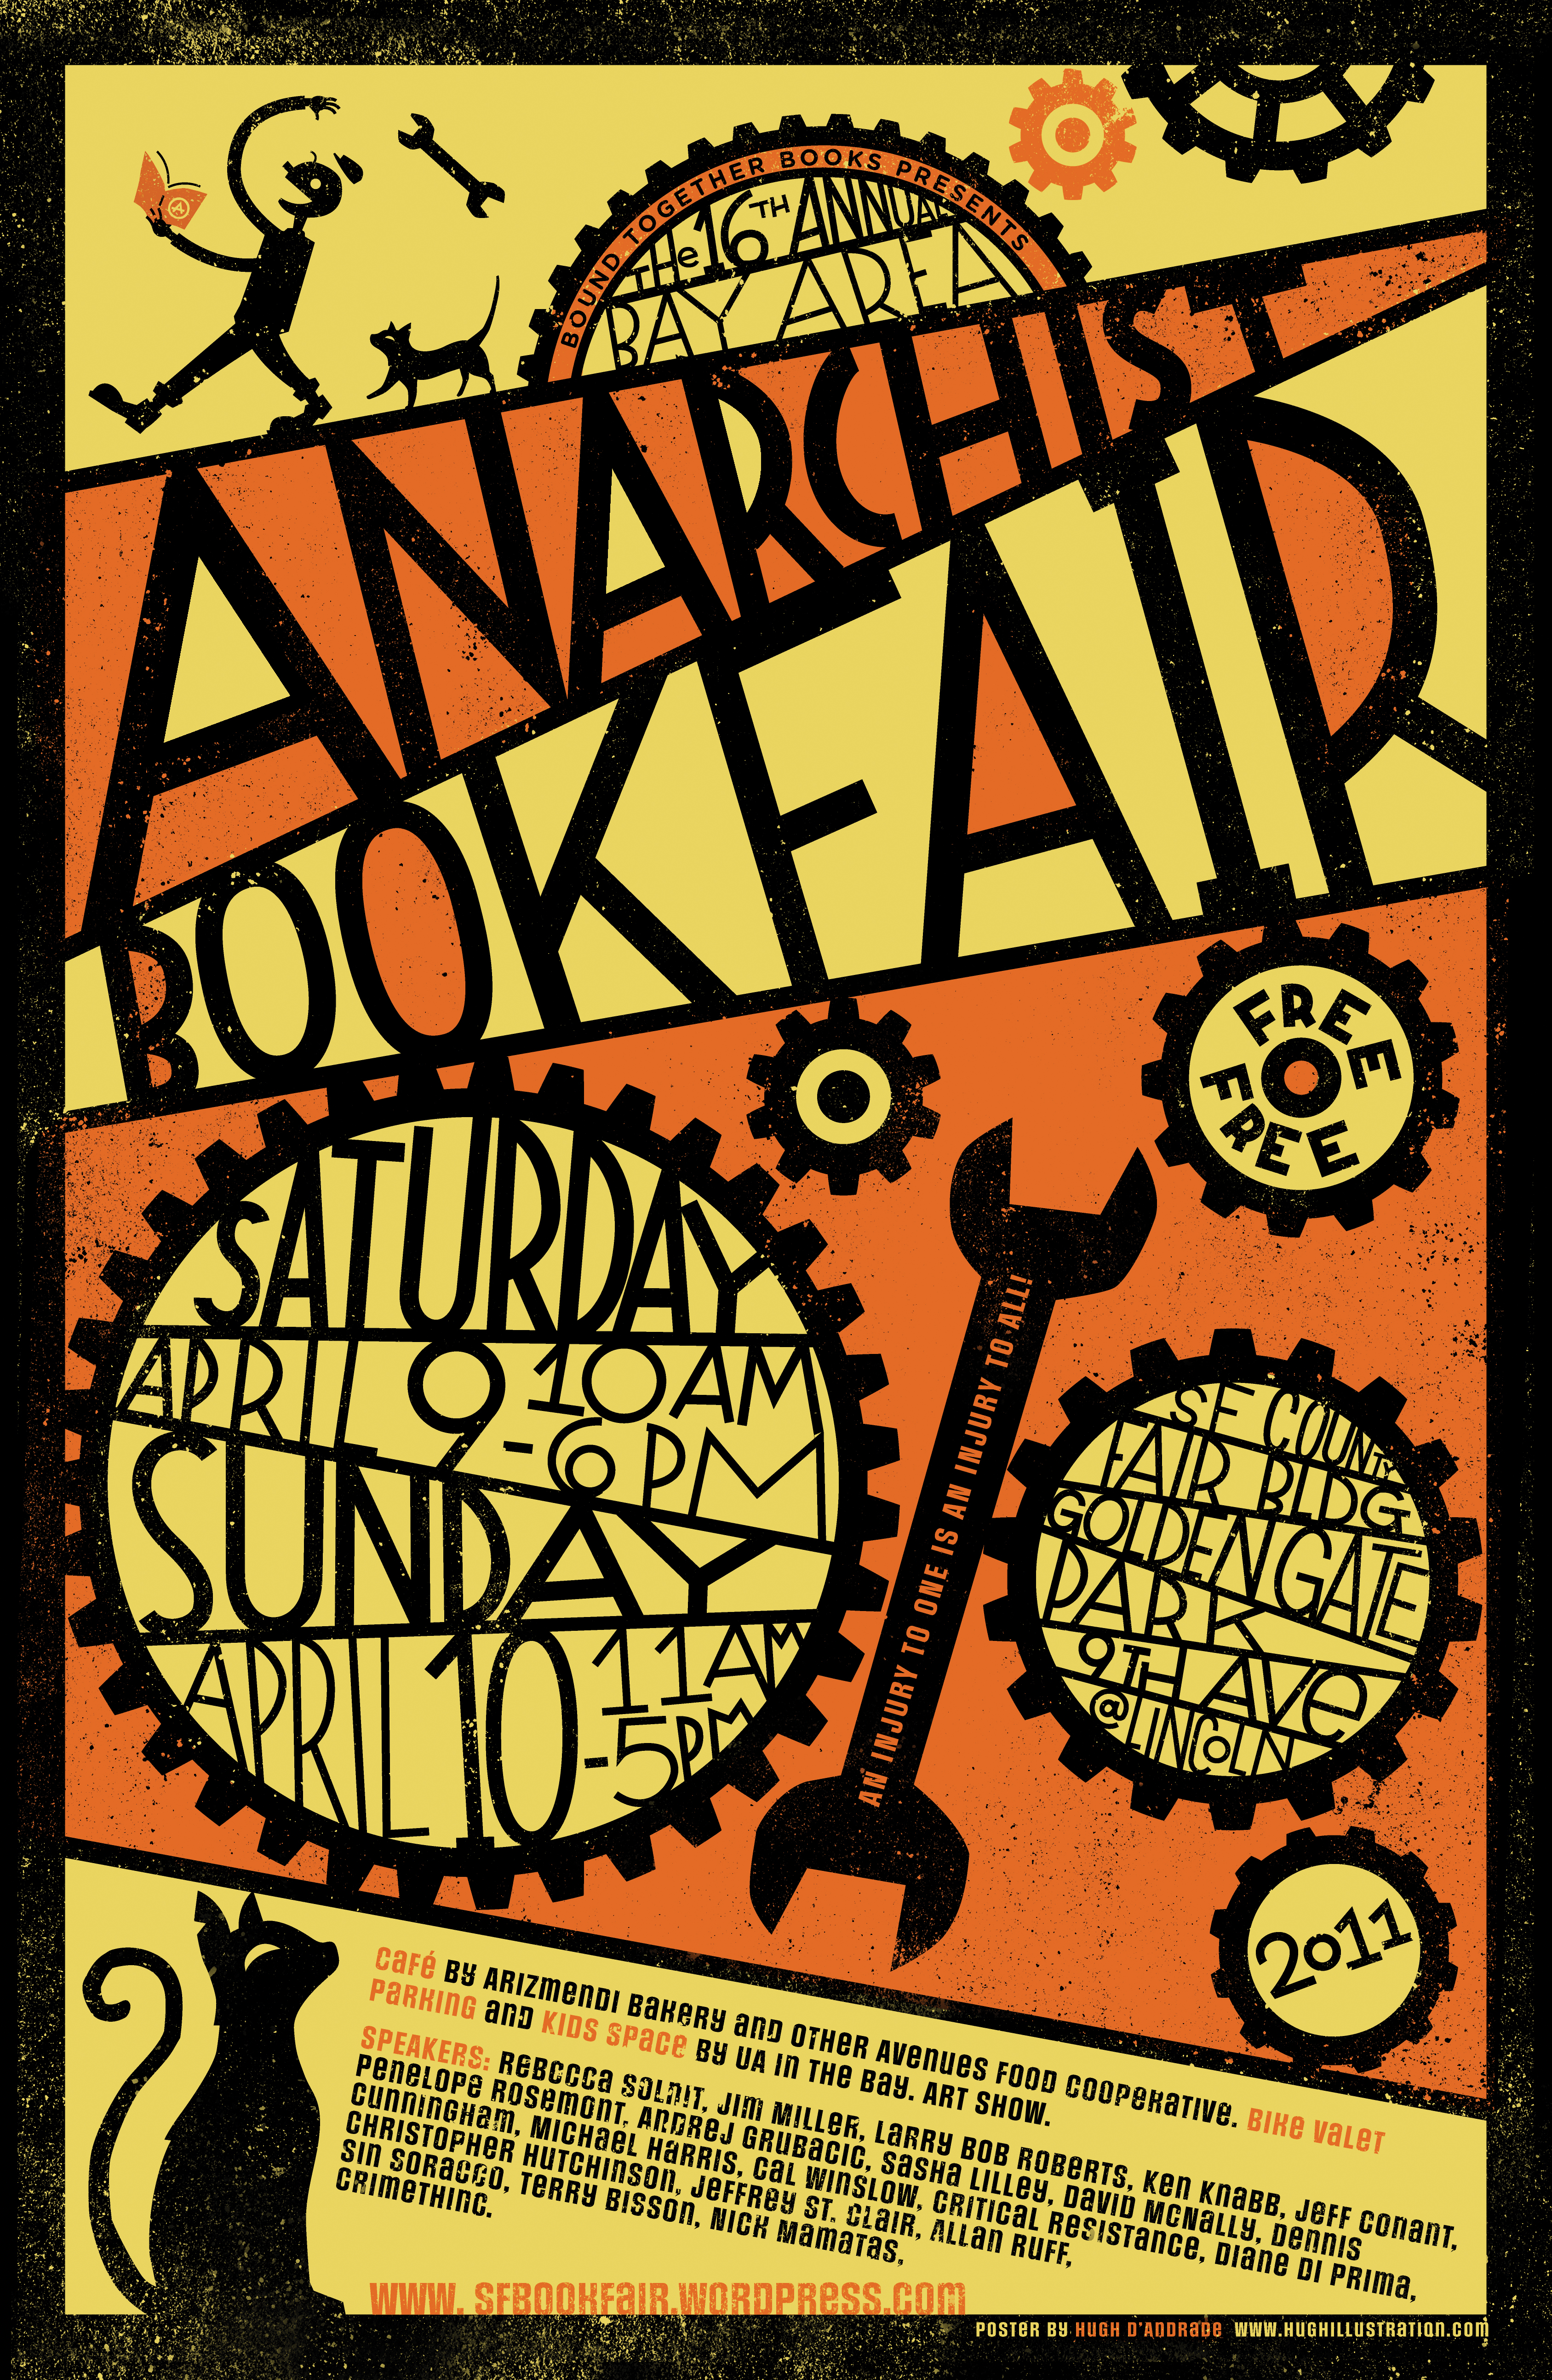 Bay Area Anarchist Book FairBook Fair Poster Gallery